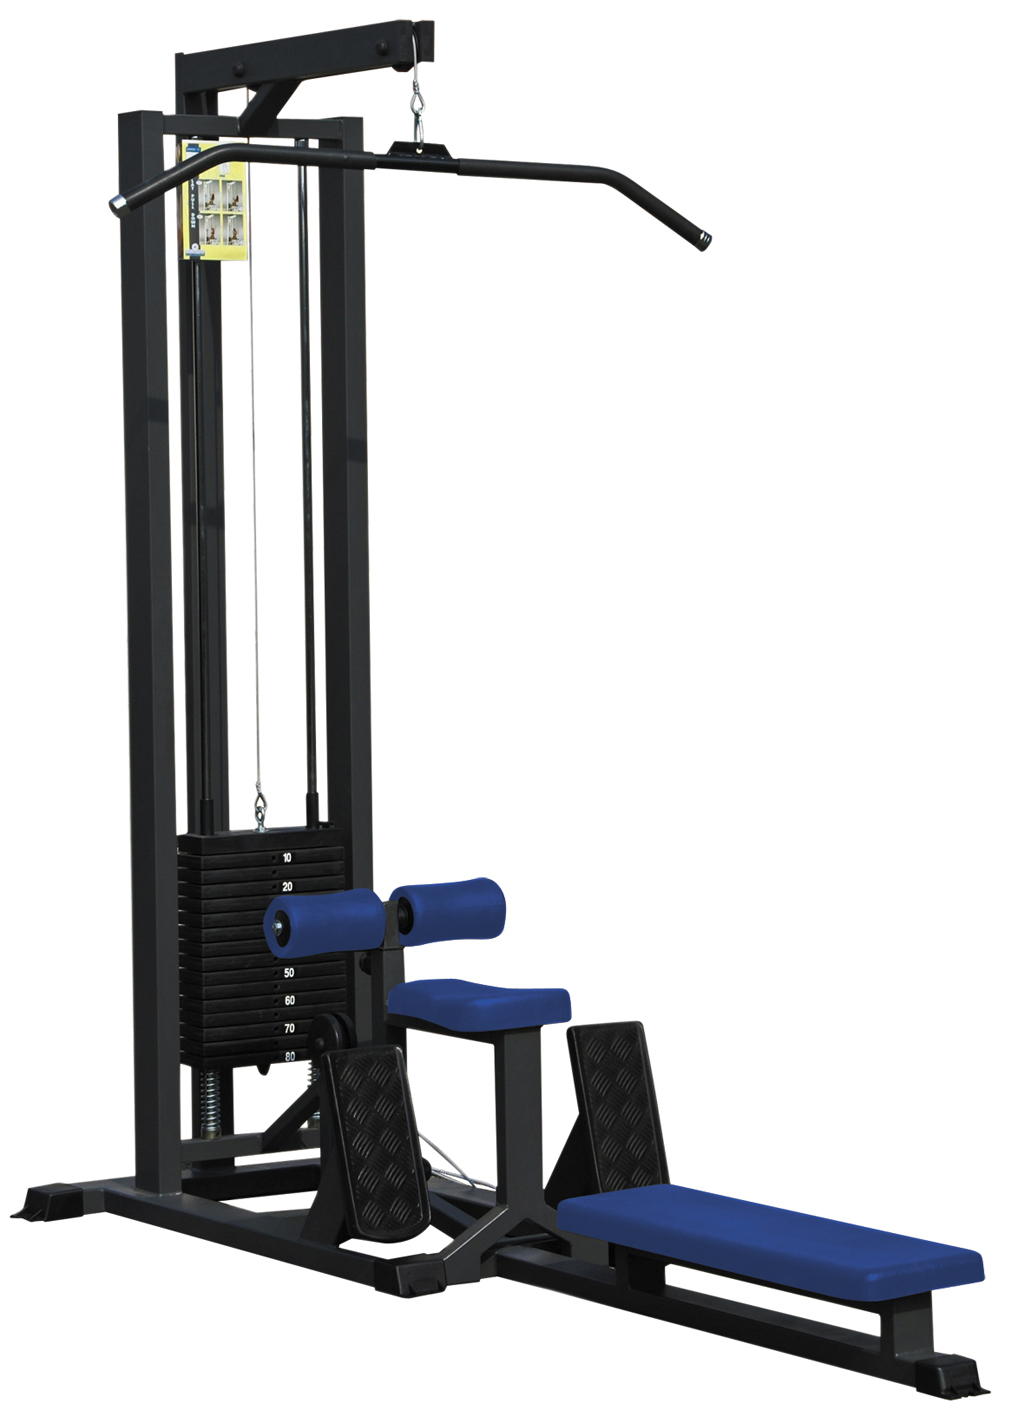 2020c lat pulley machine carter plexi metalsport. Black Bedroom Furniture Sets. Home Design Ideas